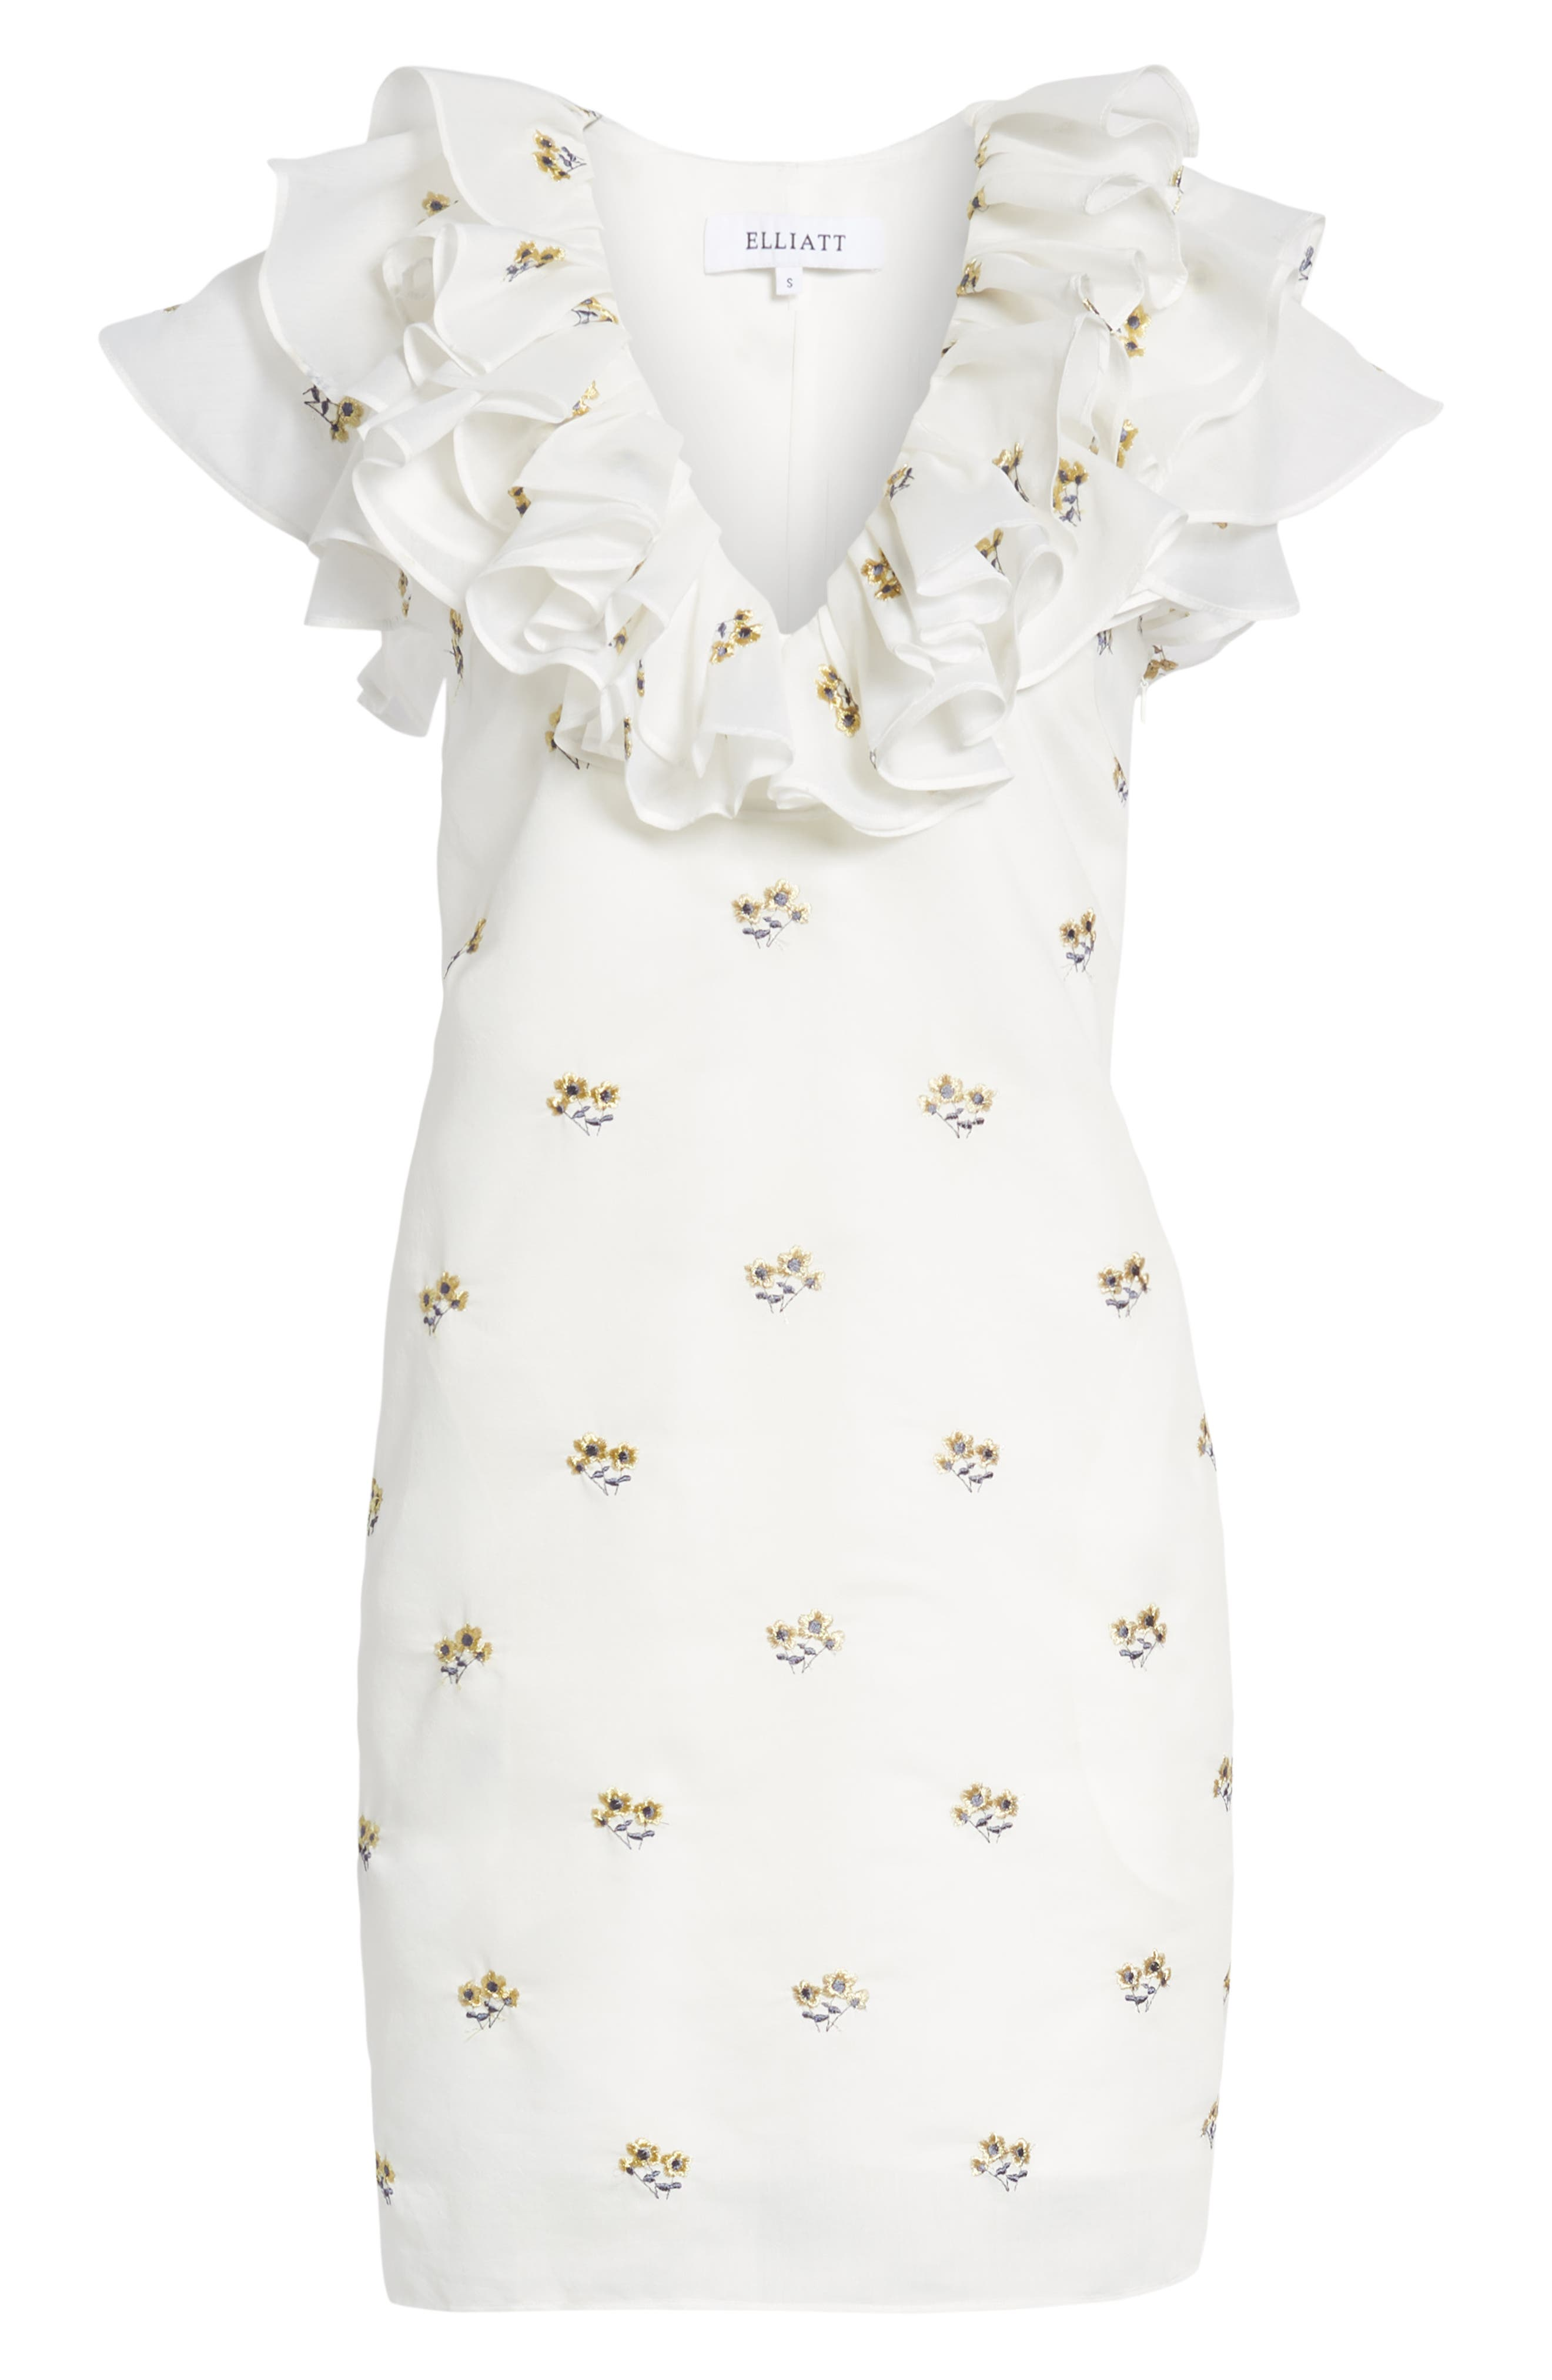 Theseus Embroidered Ruffle Dress,                             Alternate thumbnail 7, color,                             White